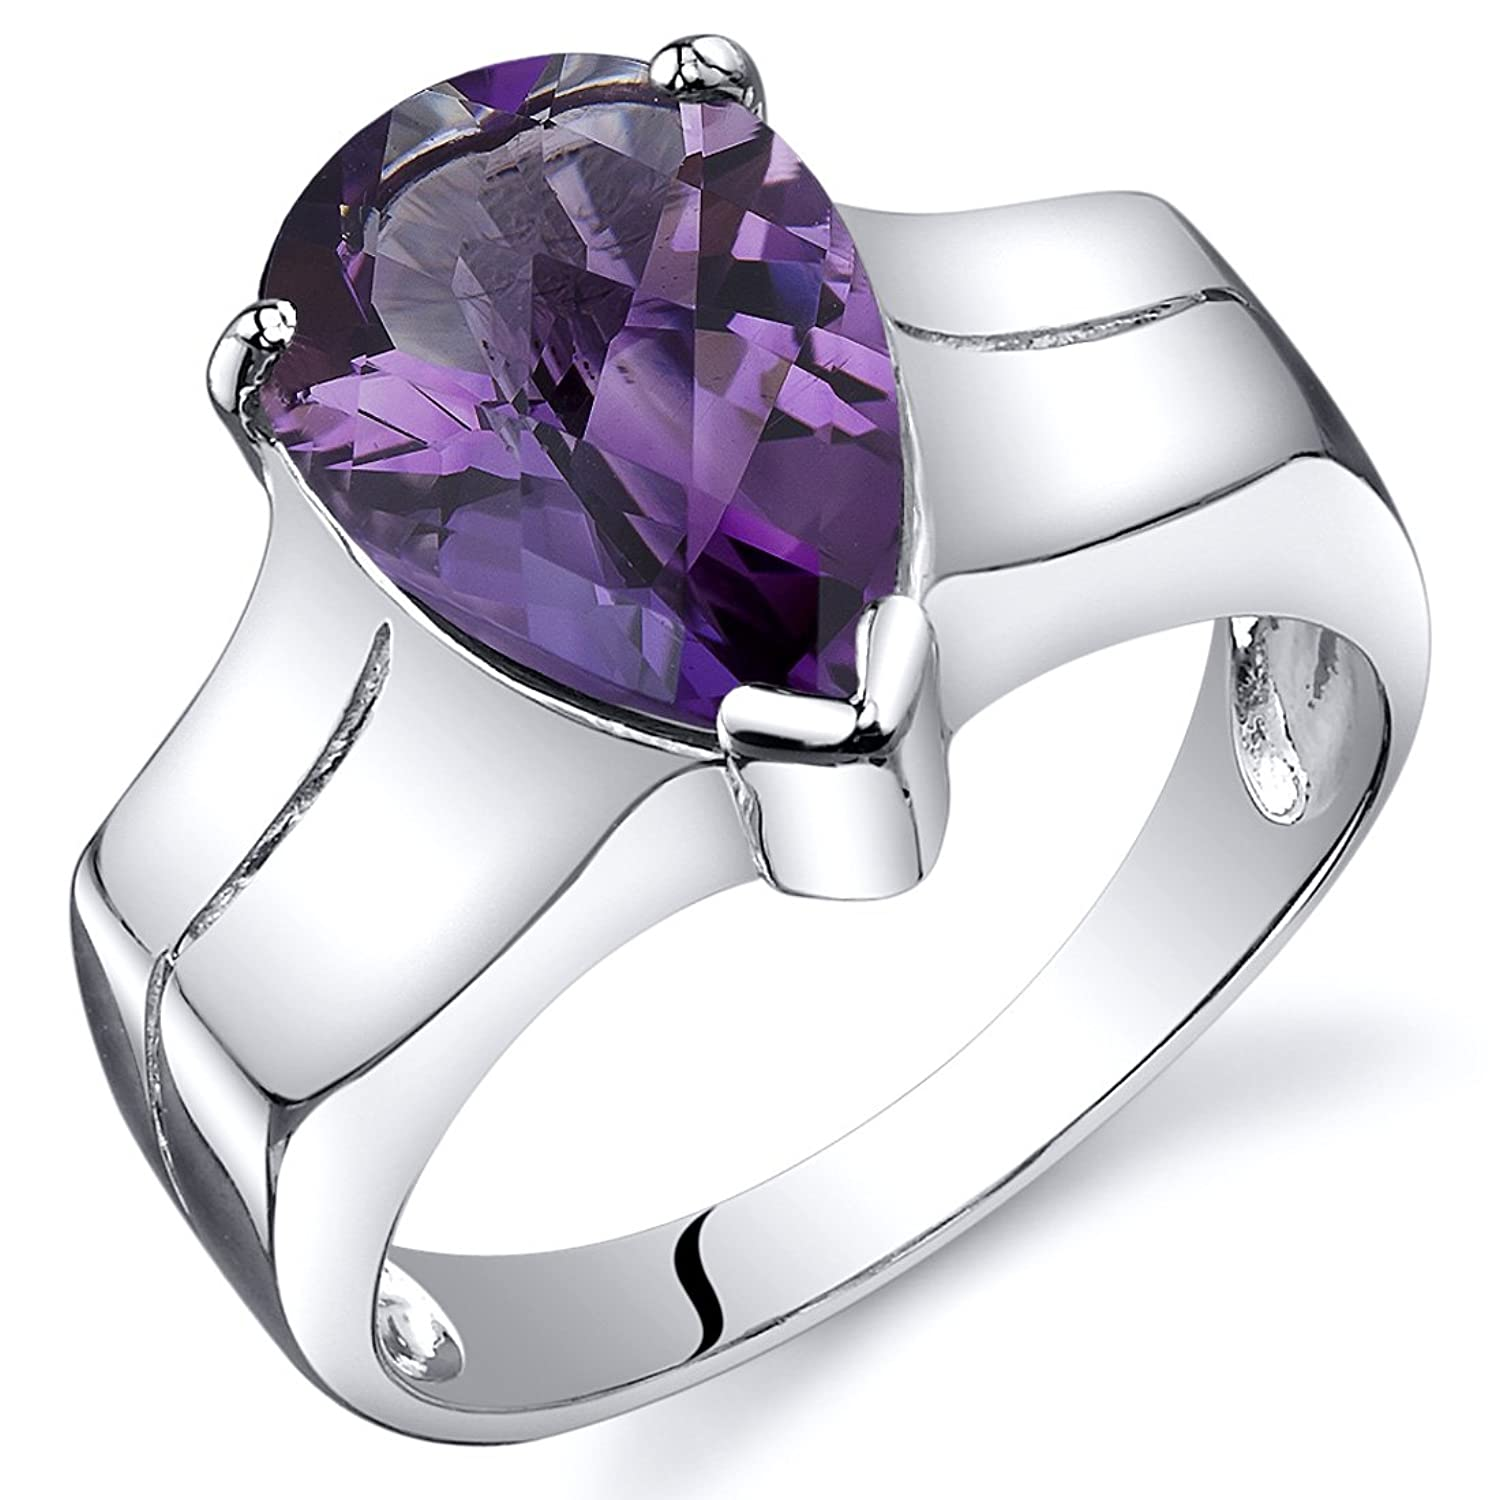 Amethyst Solitaire Ring Sterling Silver Rhodium Nickel Finish Pear Shape 2.50 Carats Sizes 5 to 9